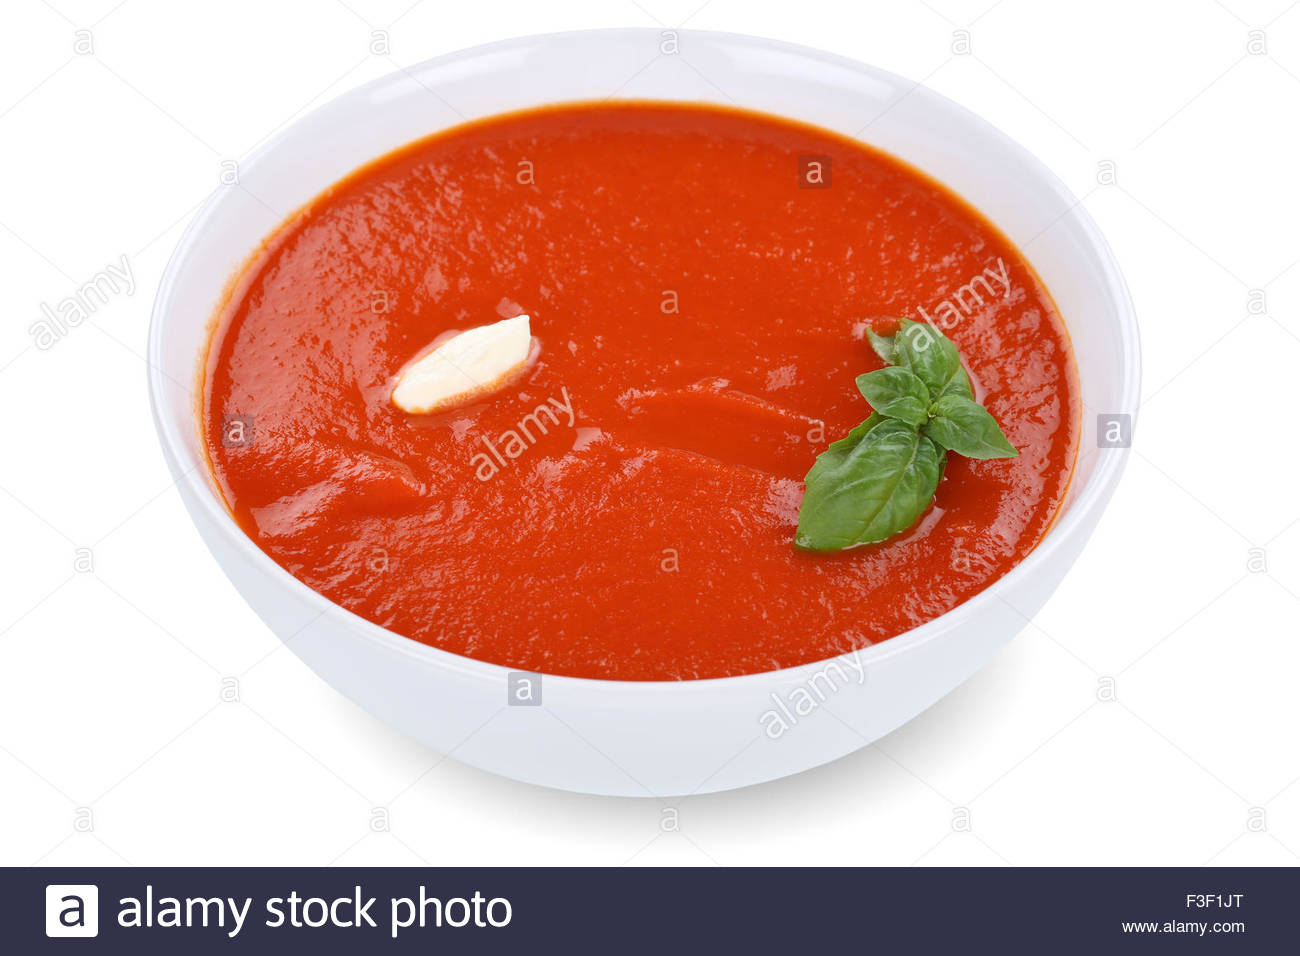 Tomato soup meal in bowl with tomatoes isolated on a white 1300x956